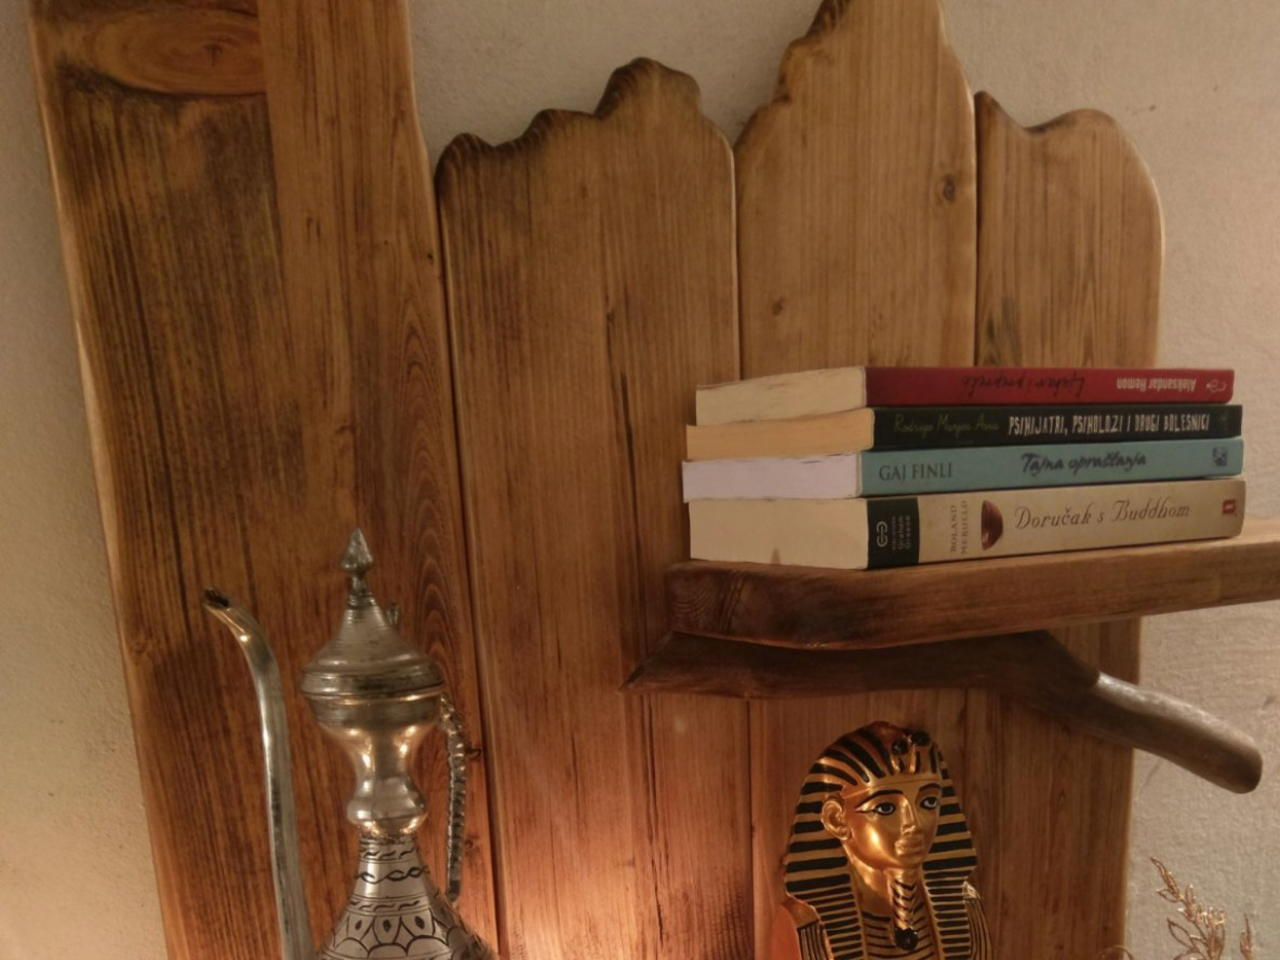 192 Tutorials For Shelves How To Make Woodwork